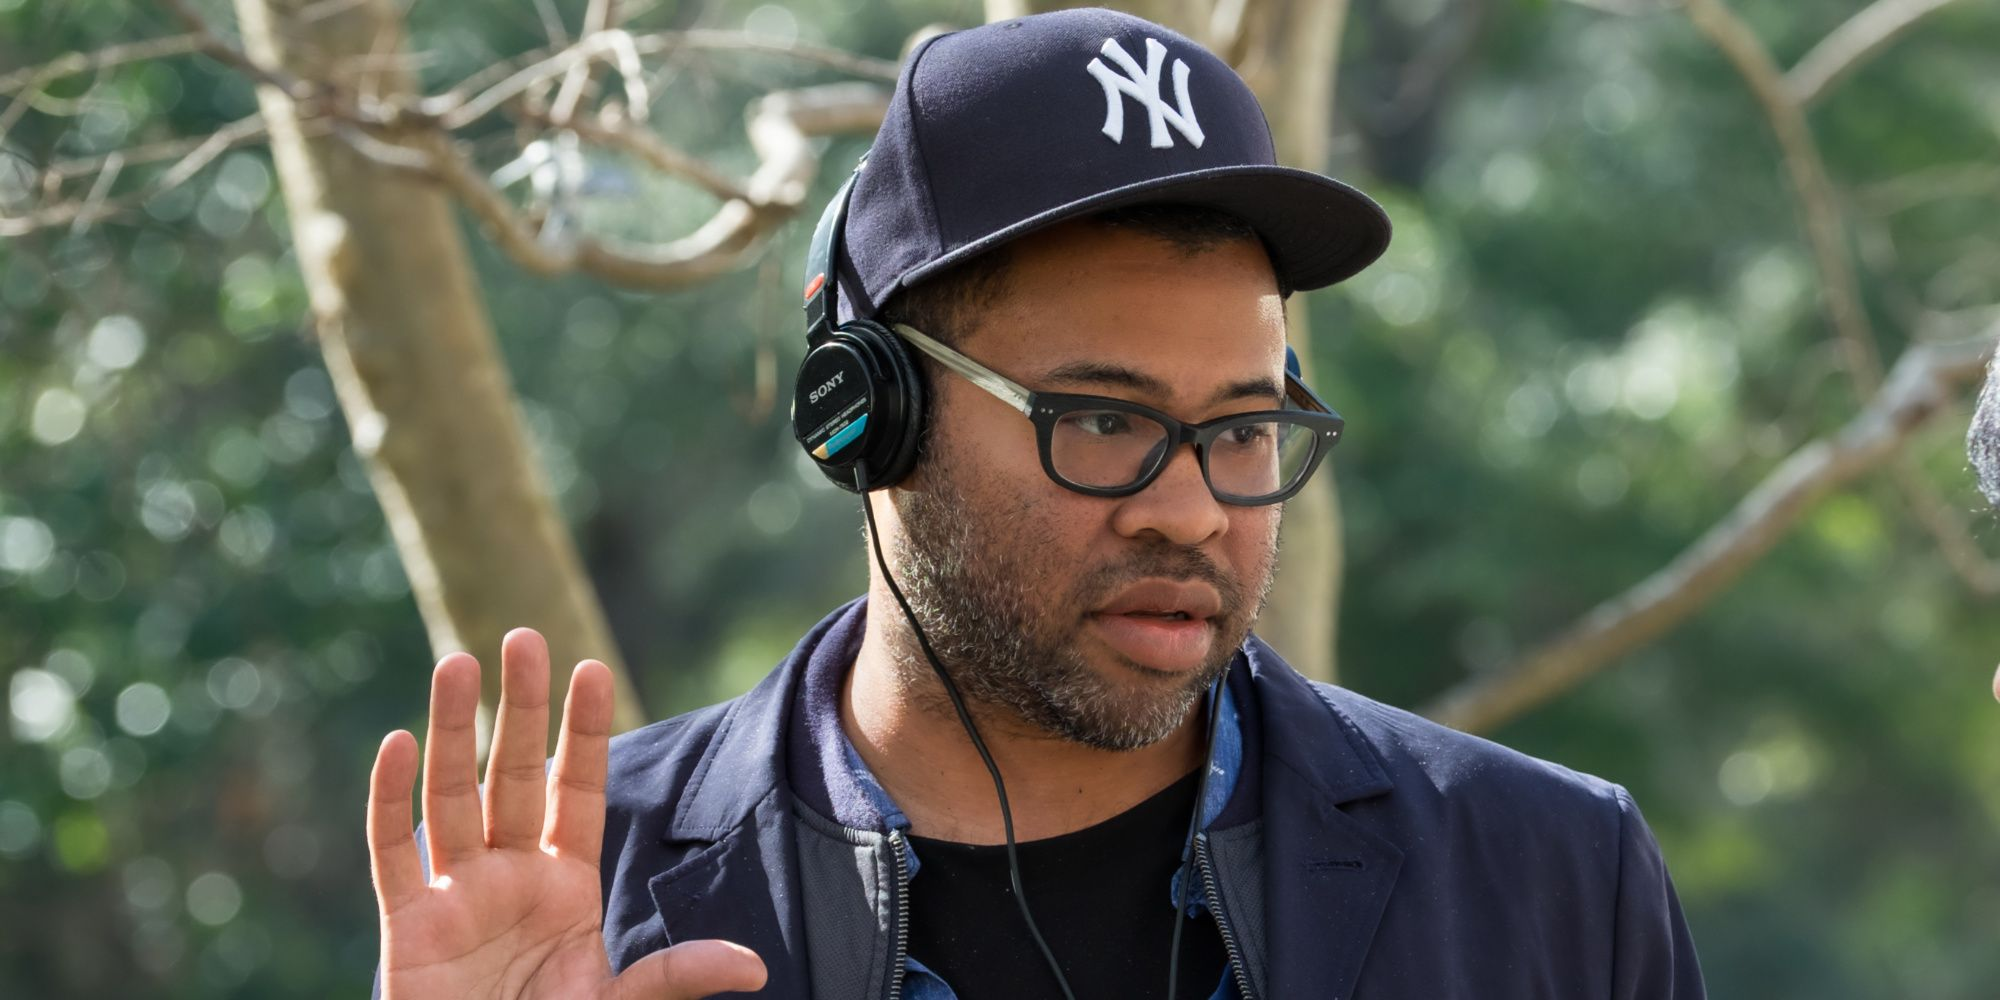 Why Jordan Peele is Unlikely to Cast White Lead: 'I've Seen That Movie'